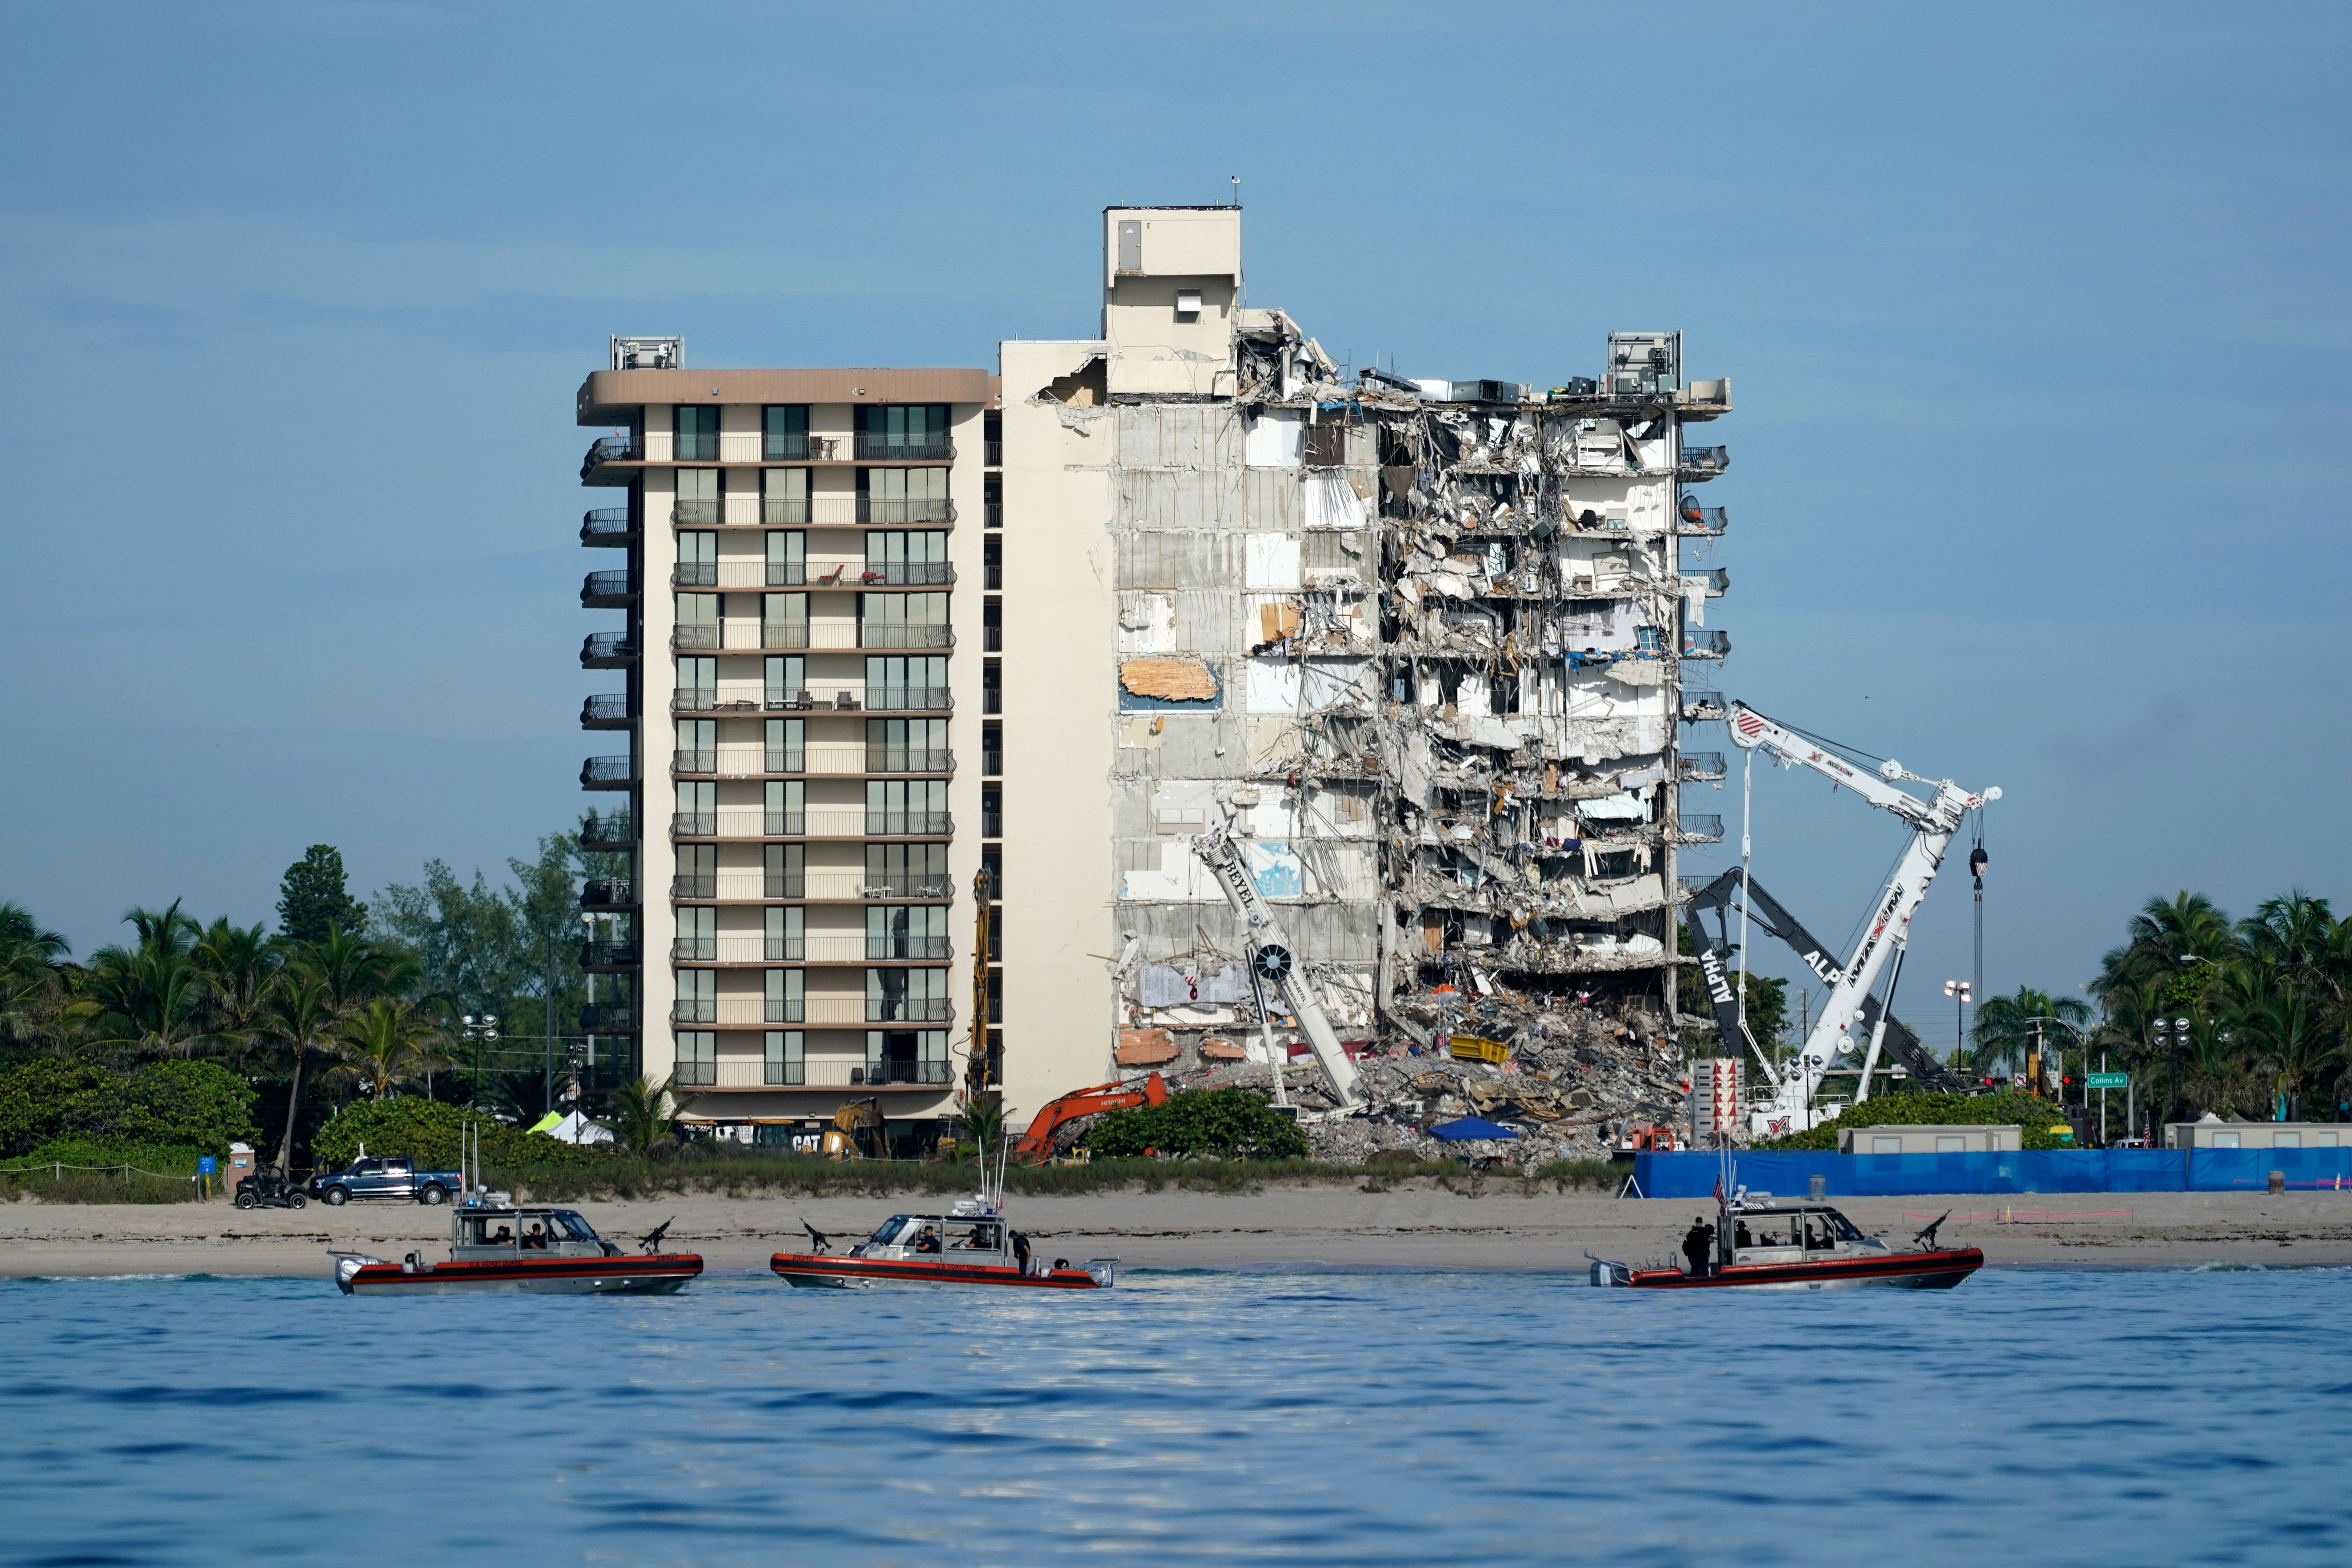 US Coast Guard boats patrol in front of the partially collapsed Champlain Towers South building in Surfside, Florida, on July 1, 2021.